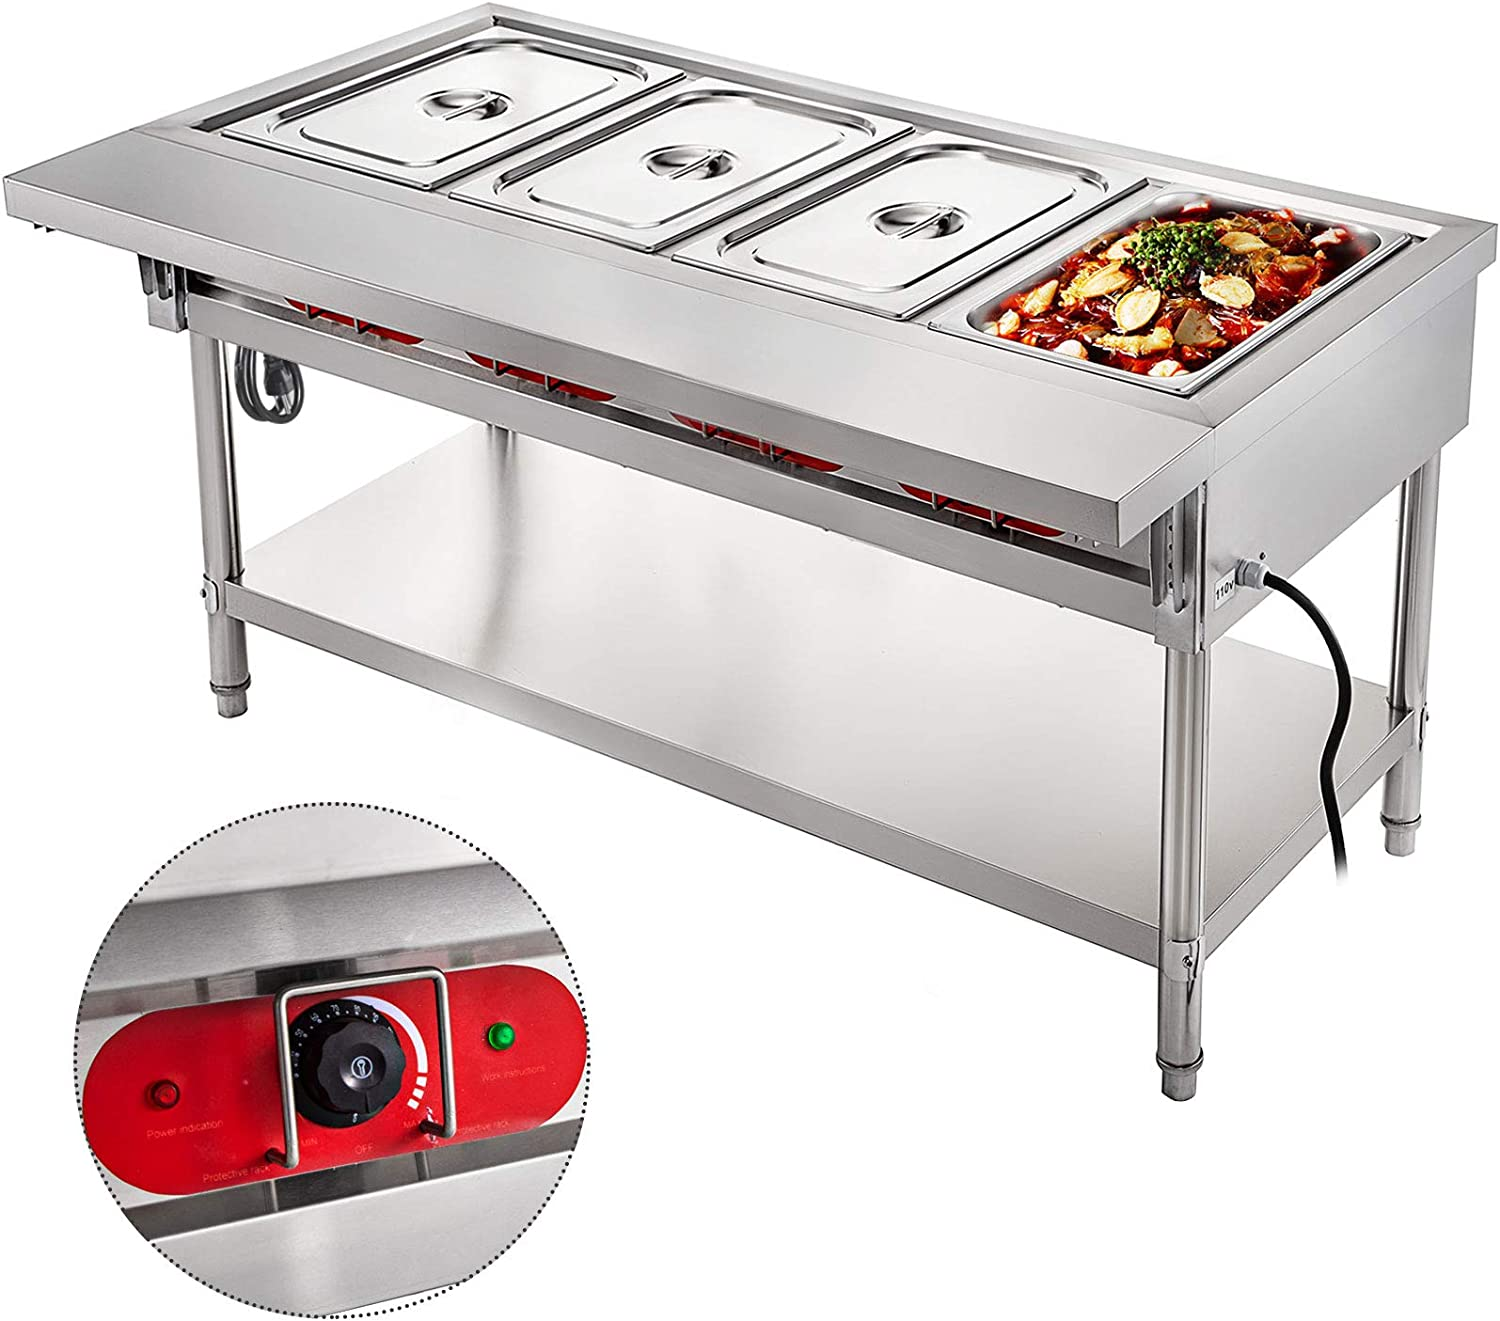 VBENLEM Steam Table Food Warmer 4 Pot Steam Table Food Warmer 18 Quart/Pan with Lids with 7 Inch Cutting Board Commercial Electric Food Warmer Bain Marie Buffet Steam Serving Counter 110V 2000W